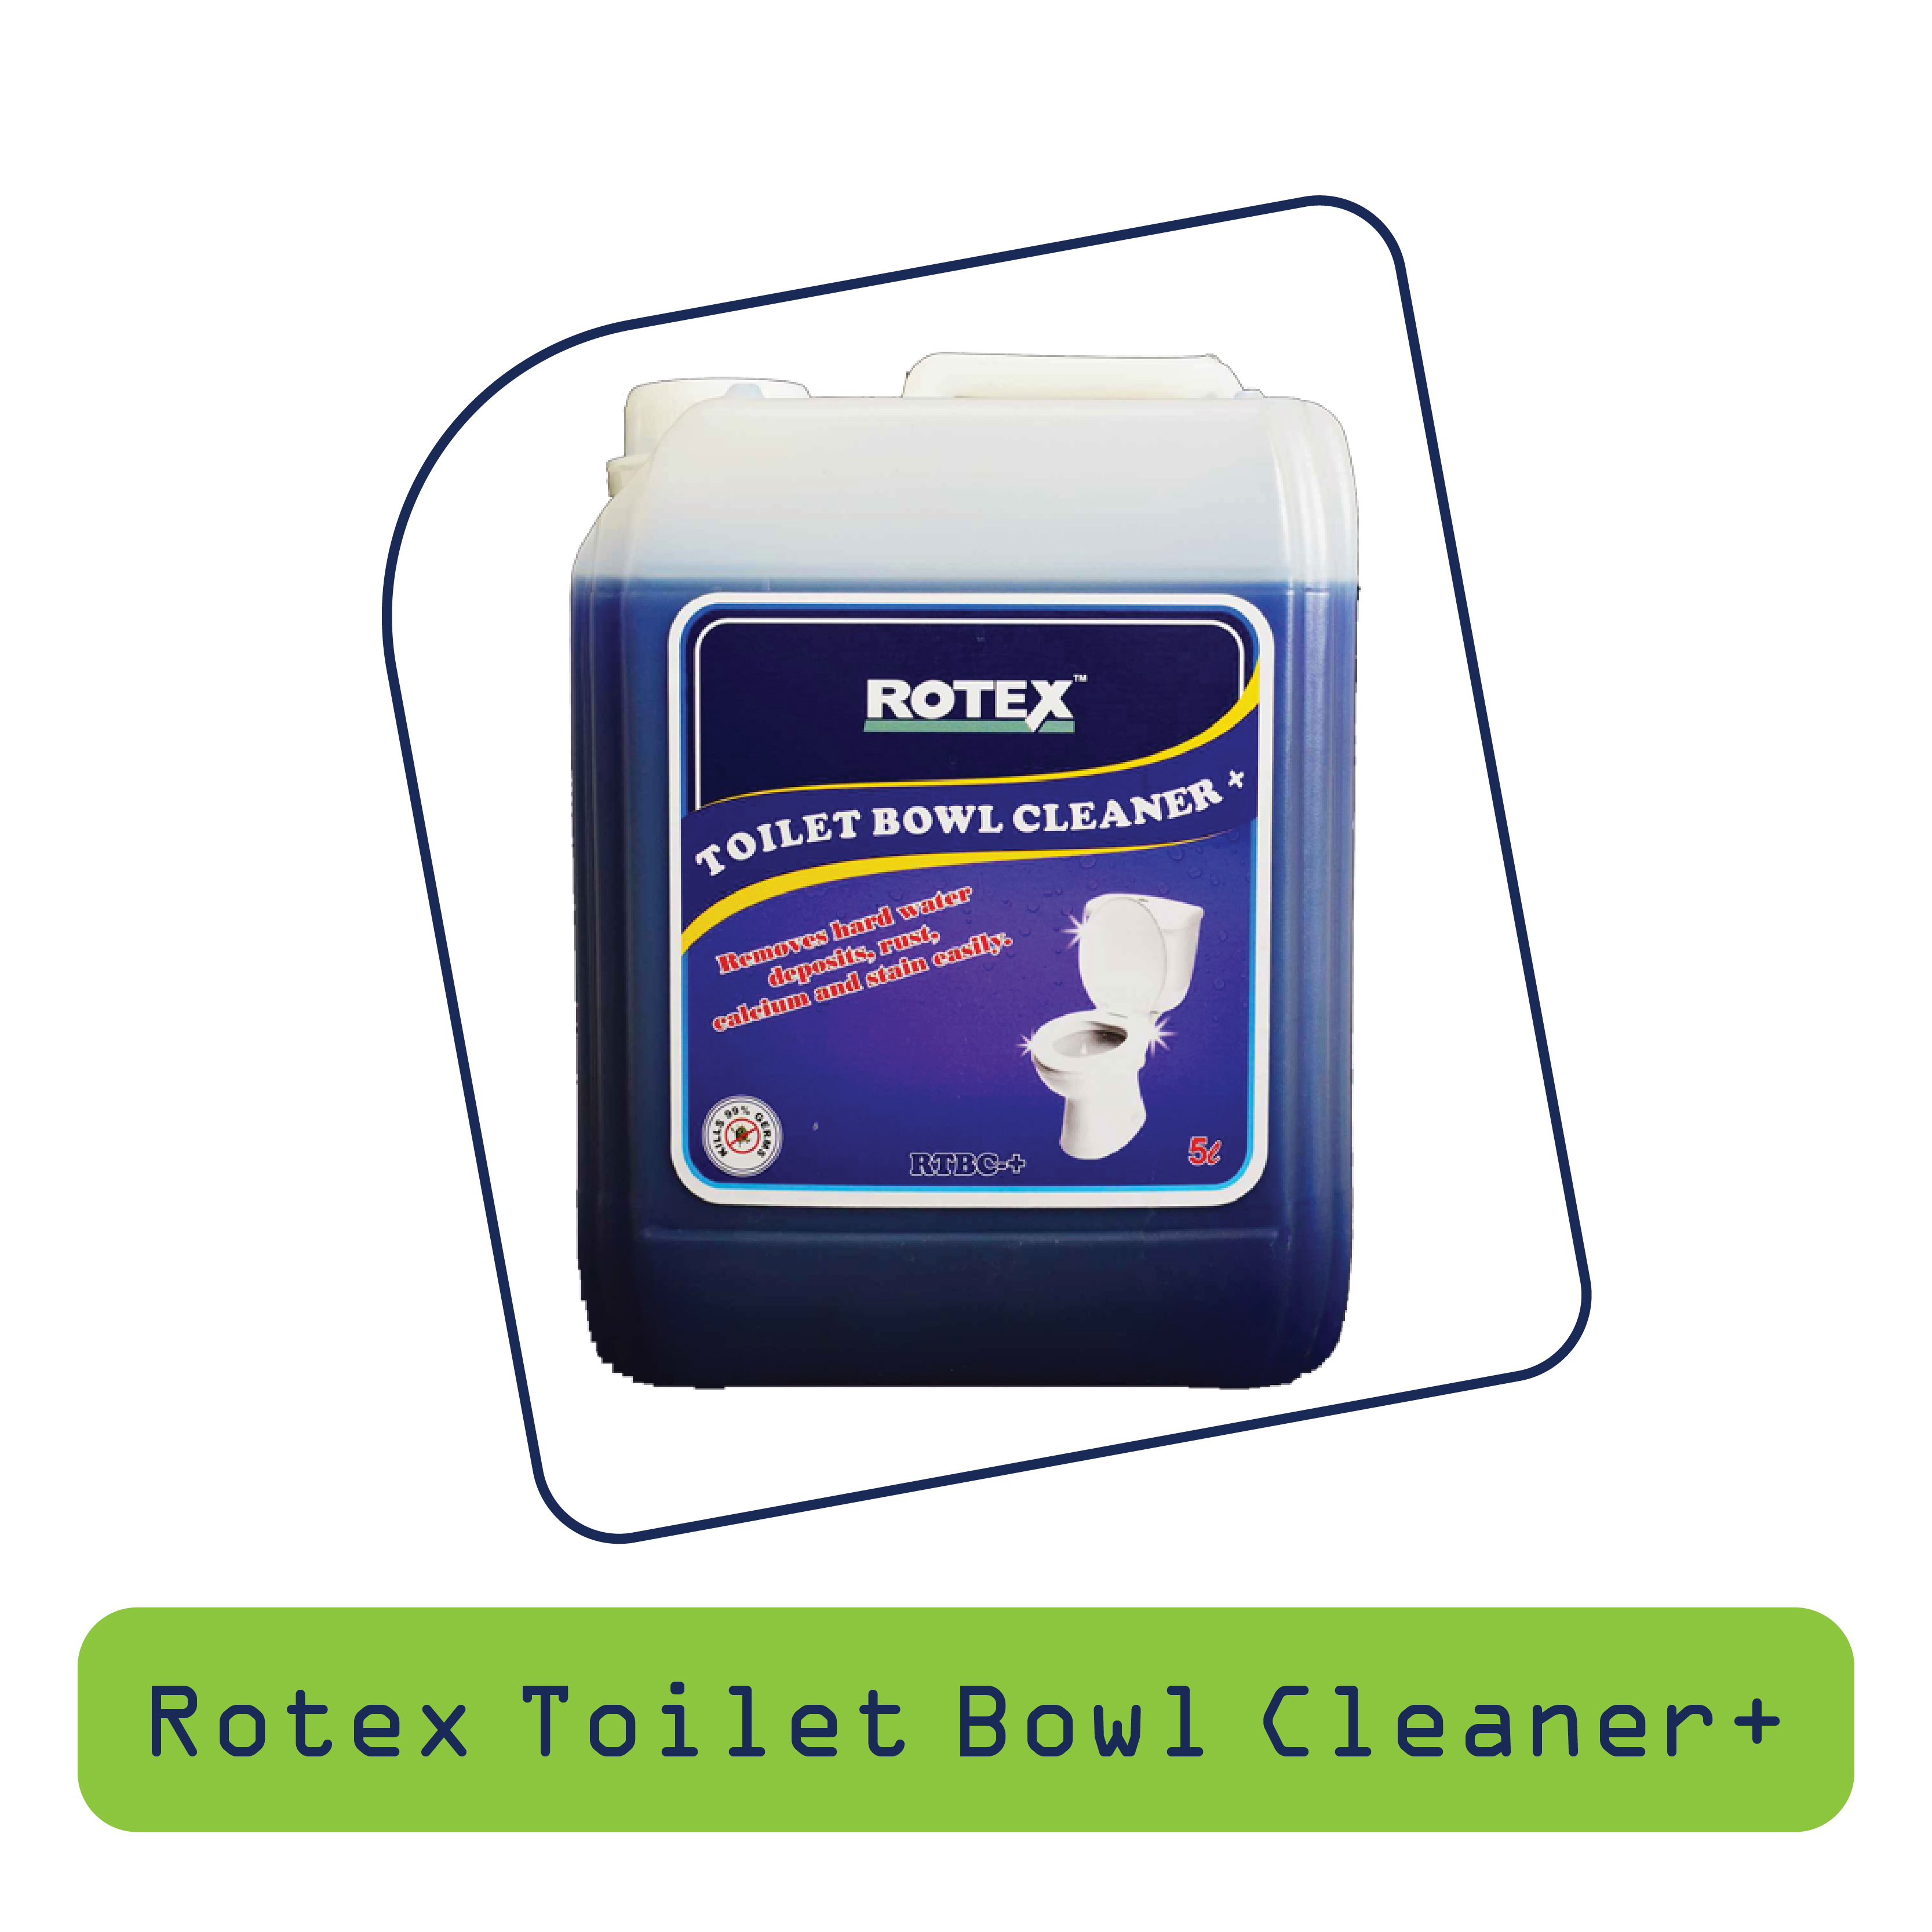 Rotex Toilet Bowl Cleaner